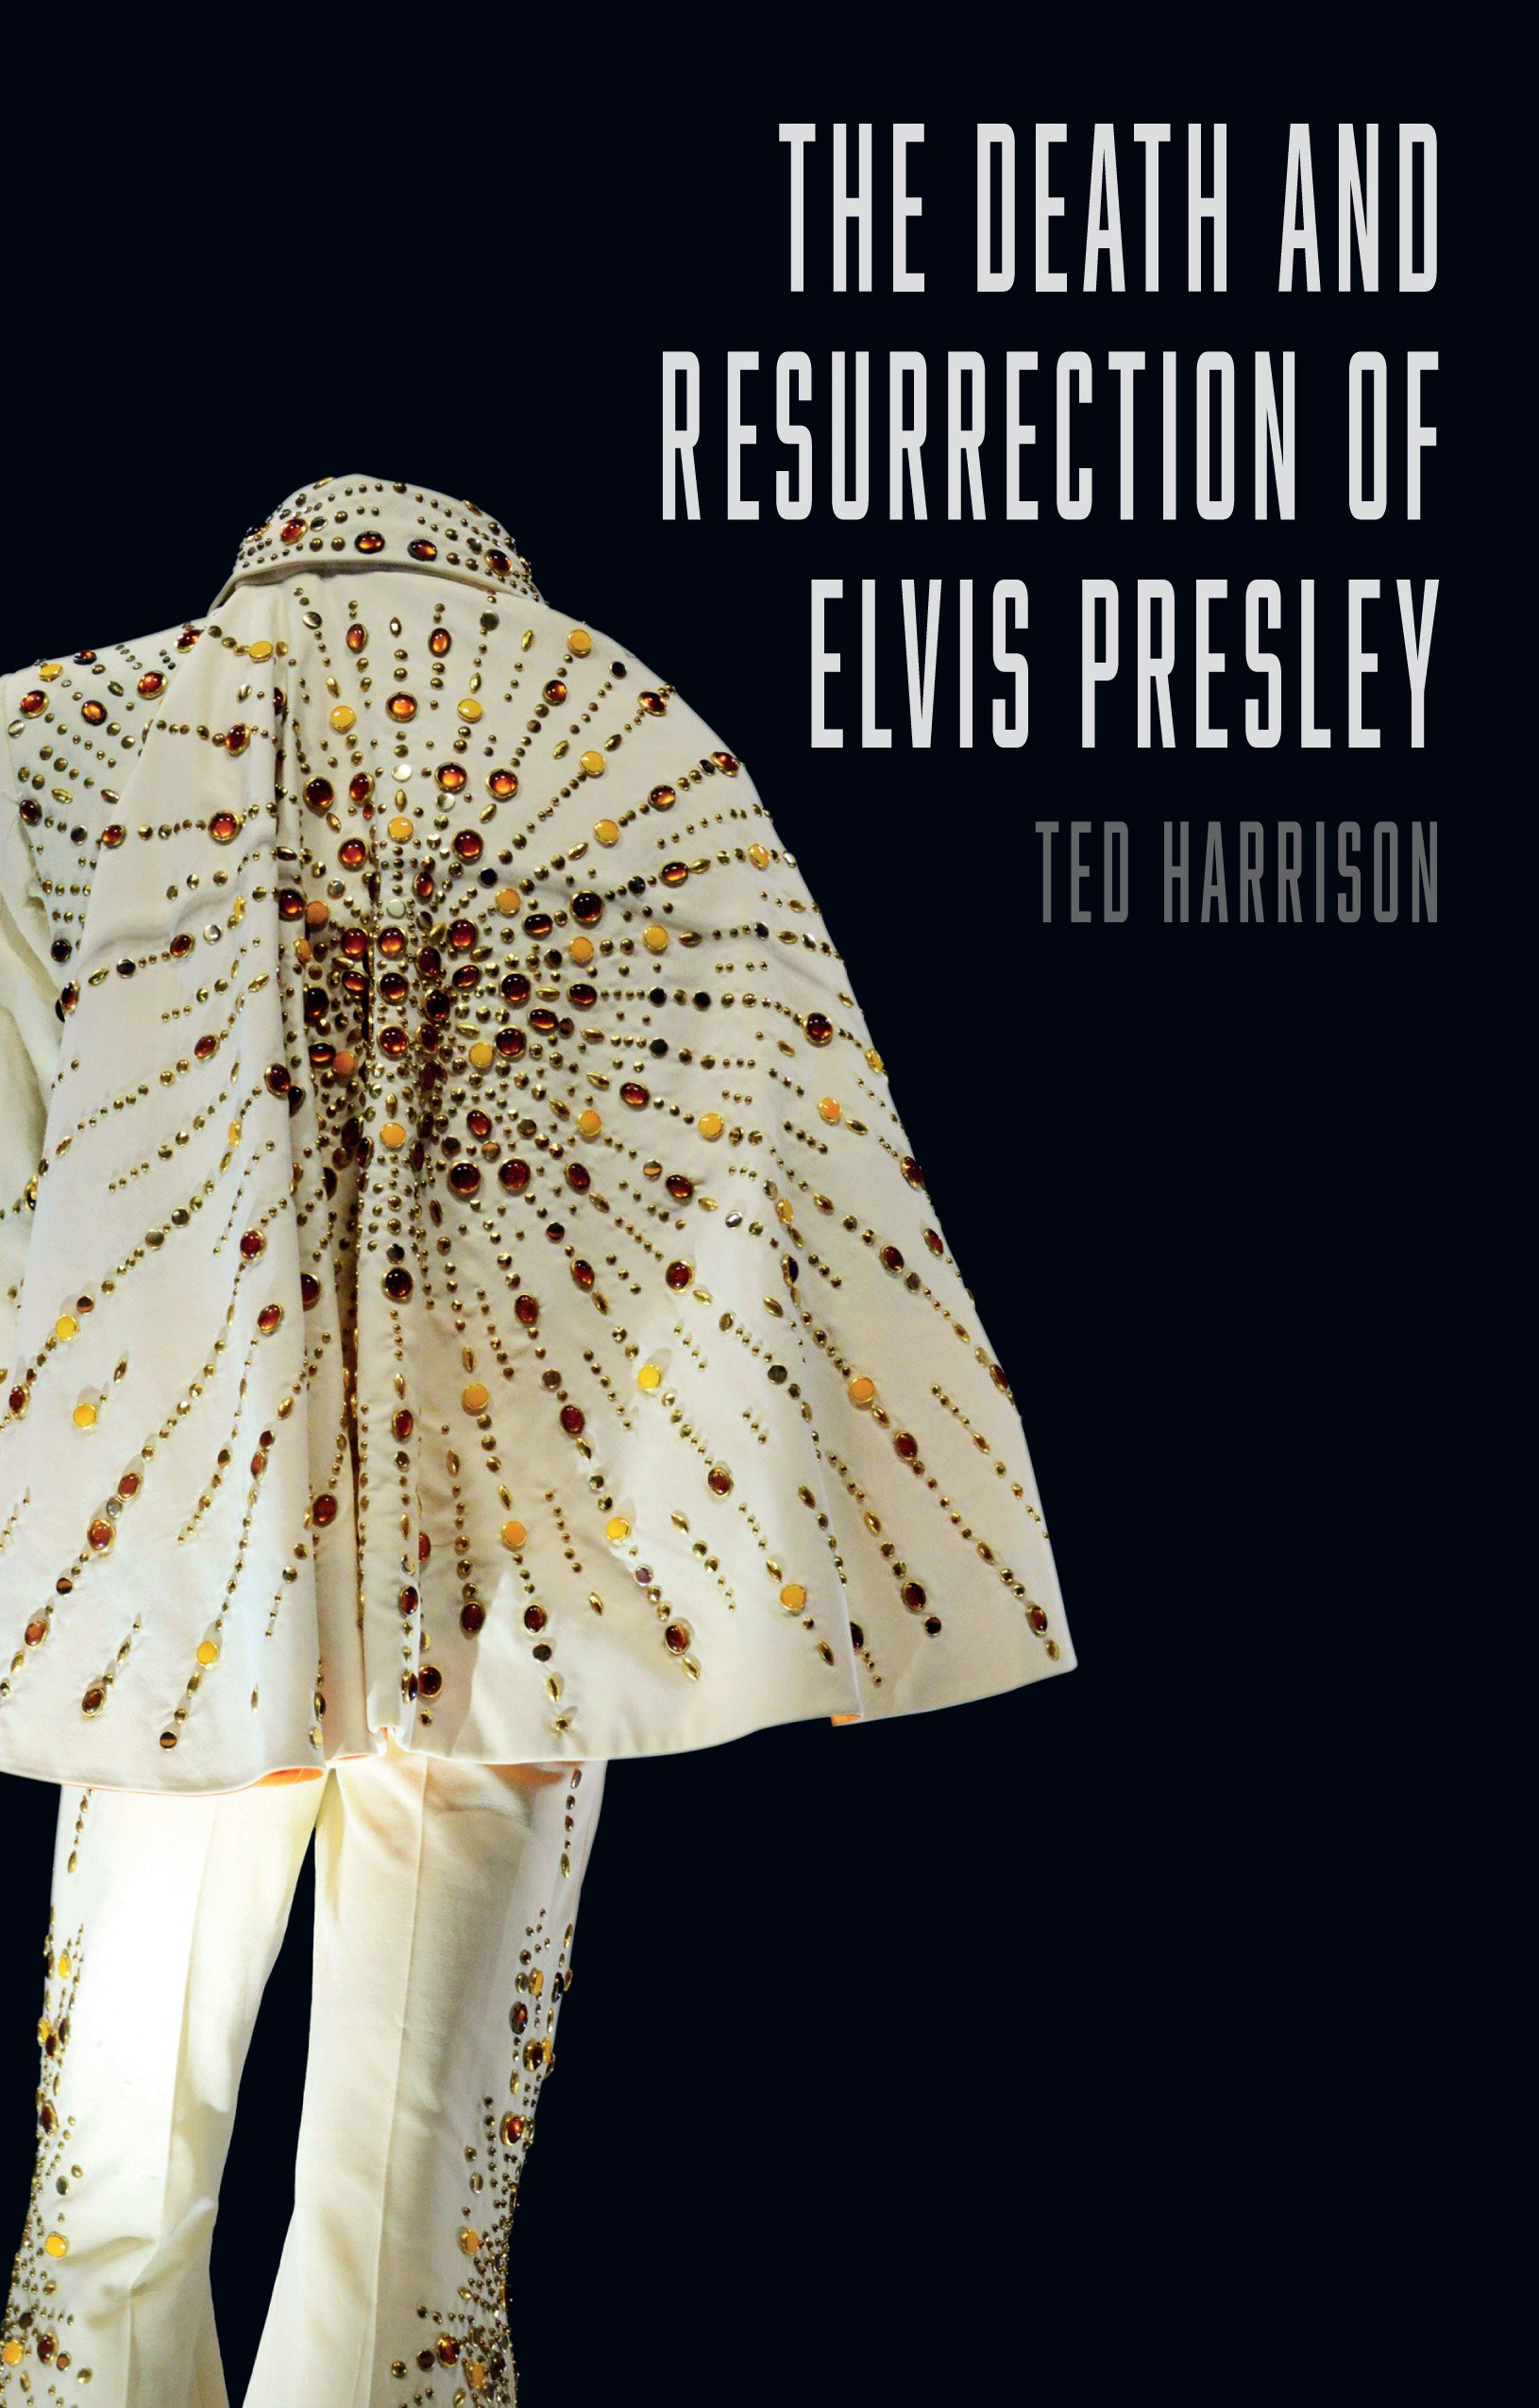 The Death and Resurrection of Elvis Presley - Hardcover